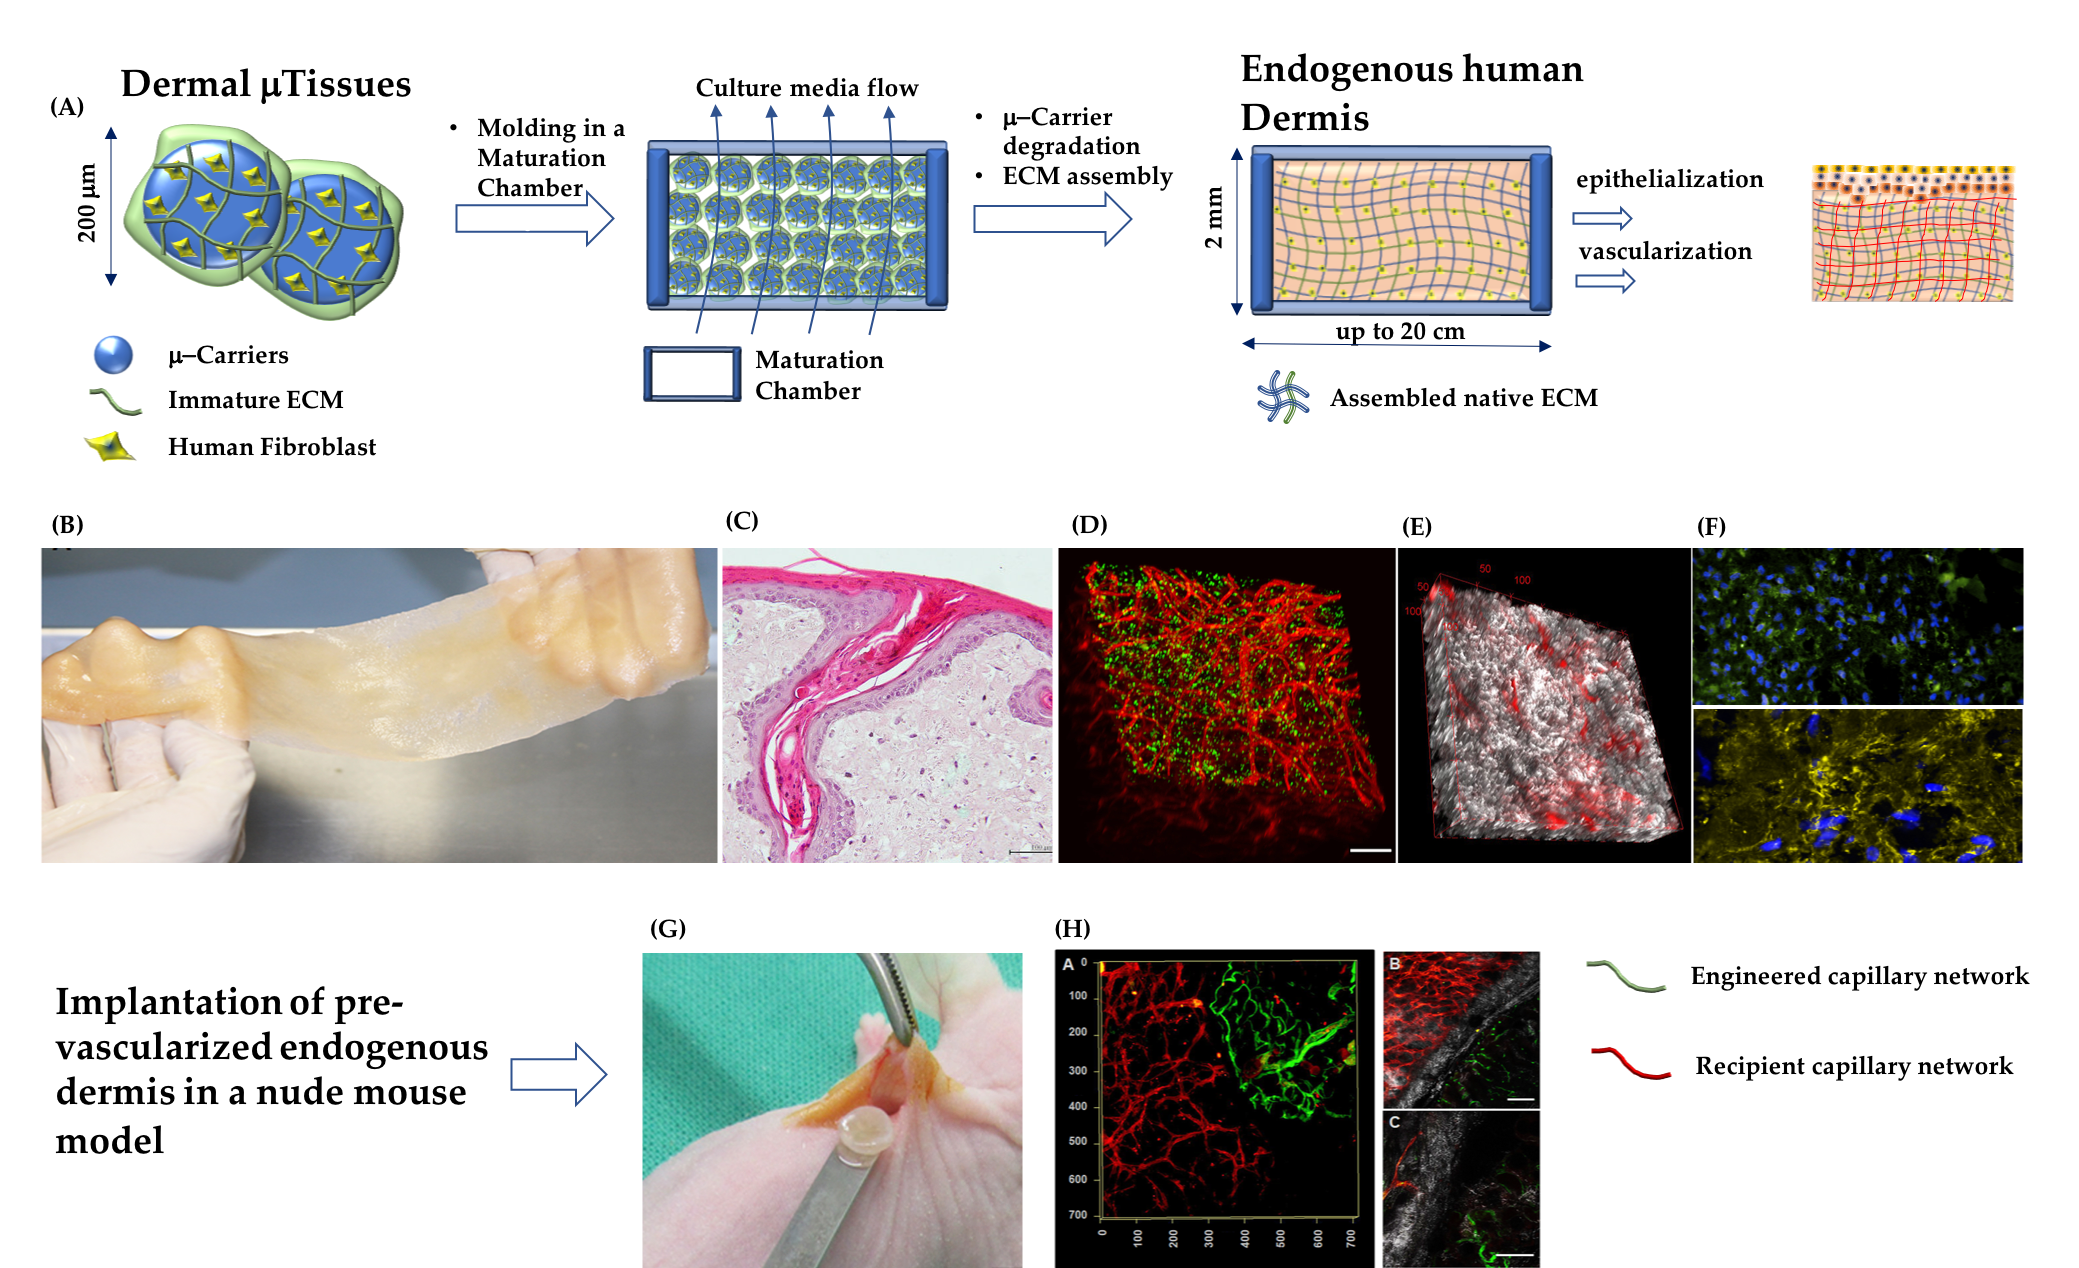 """The main steps for the production of a DRT composed of fibroblast-assembled/prevascularized human dermis substitutes, and its morphological features before and after implantation in a nude mice model. (A) From left to right: production of Dermal-Tissues; their molding and assembly in a maturation chamber that is kept under dynamic culture conditions; formation of a continuum of fibroblasts embedded in their own dermal extracellular matrix; epithelization and vascularization of the endogenous human dermis. (B) Fabrication of large pieces of endogenous human dermis (major dimension 20 cm). (C) Histology of the endogenous human dermis supporting the differentiation of epidermis with the formation of spontaneous rete ridge profile. (D) Vascularized endogenous human dermis: cell nuclei in green and capillary network in red. (E) Vascularized endogenous human dermis: fibroblast-assembled collagen bundles observed under label-free multiphoton microscopy in gray; capillary network in red. (F) Top: fibroblast-assembled hyaluronic acid in green, cell nuclei in blue; Bottom: fibroblast-assembled elastin network in yellow, cell nuclei in blue. (G) Implantation of a piece of the pre-vascularized endogenous human dermis. (H) Connection between engineered capillary network (green) and recipient capillary network (red); fibroblast-assembled collagen in gray. Figure 3B, 3D, 3E, 3G, and 3H are from reference [34] """"Mazio, C. et al. Pre-vascularized dermis model for fast and functional anastomosis with host vasculature. Biomat. 192, 159–170 (2019)"""". Authors obtained permision from Elsevier: License Number 4681910194044."""